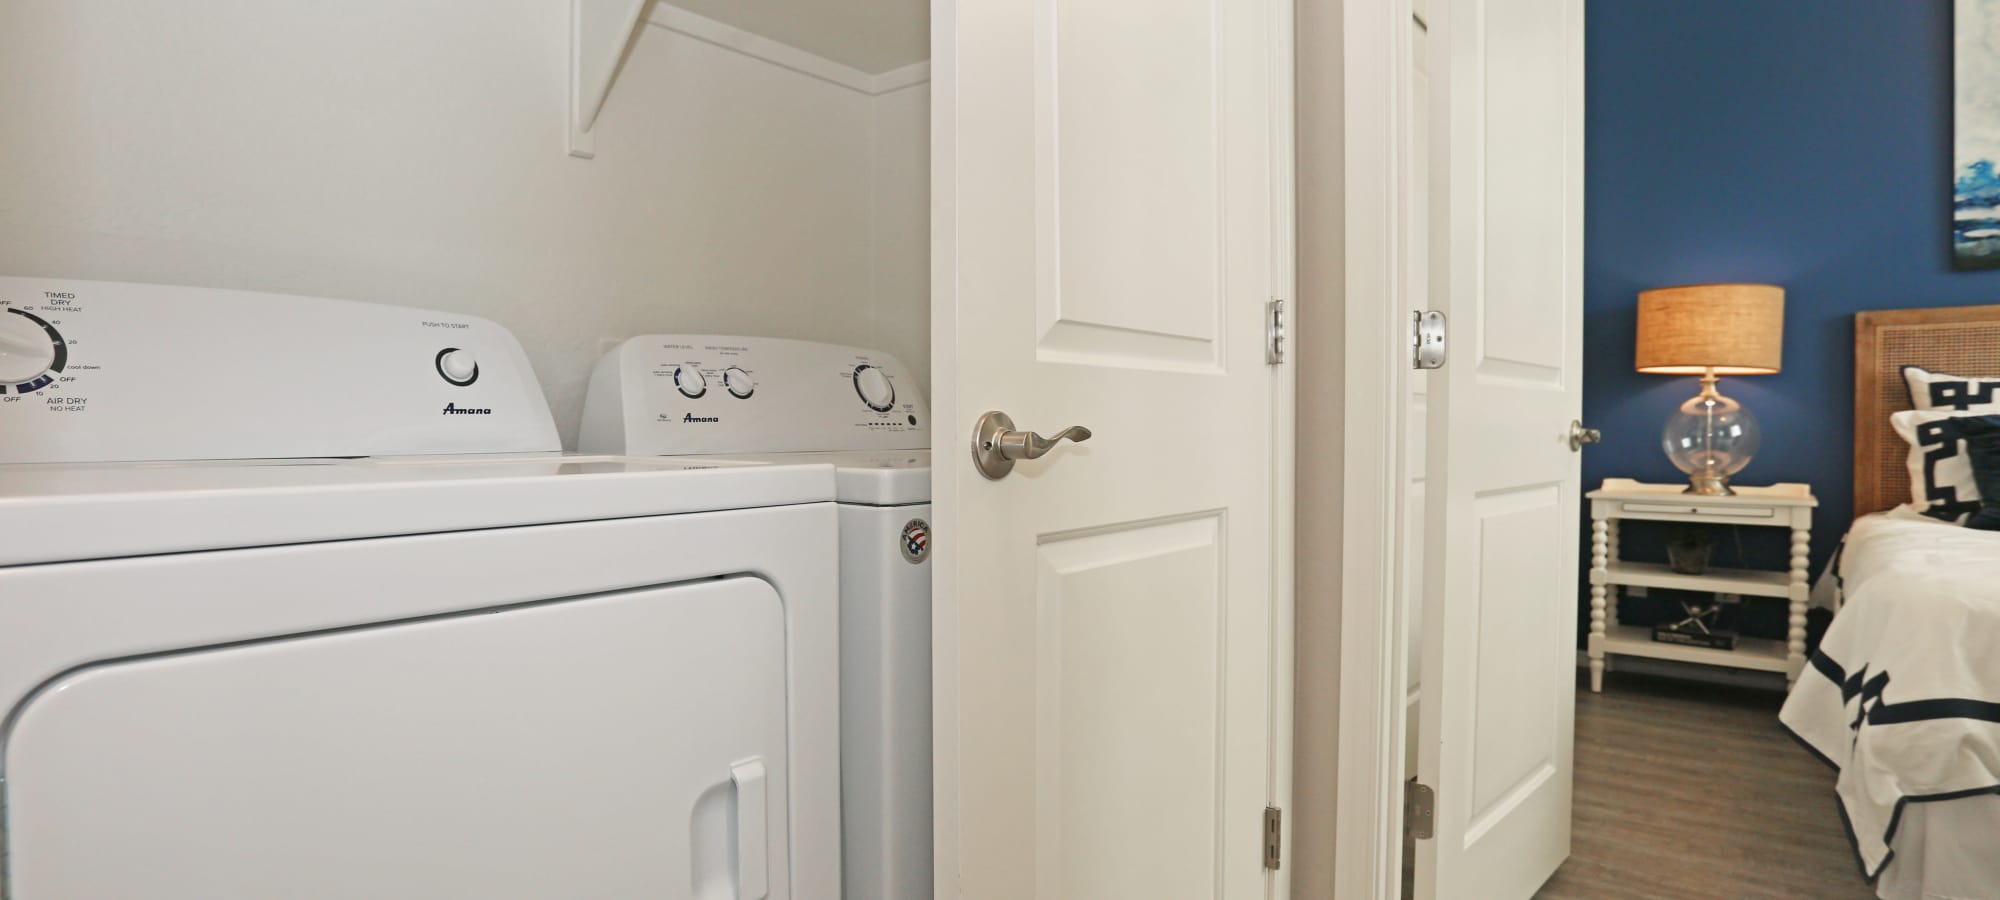 In-unit washer and dryer in model home at Christopher Todd Communities At Marley Park in Surprise, Arizona